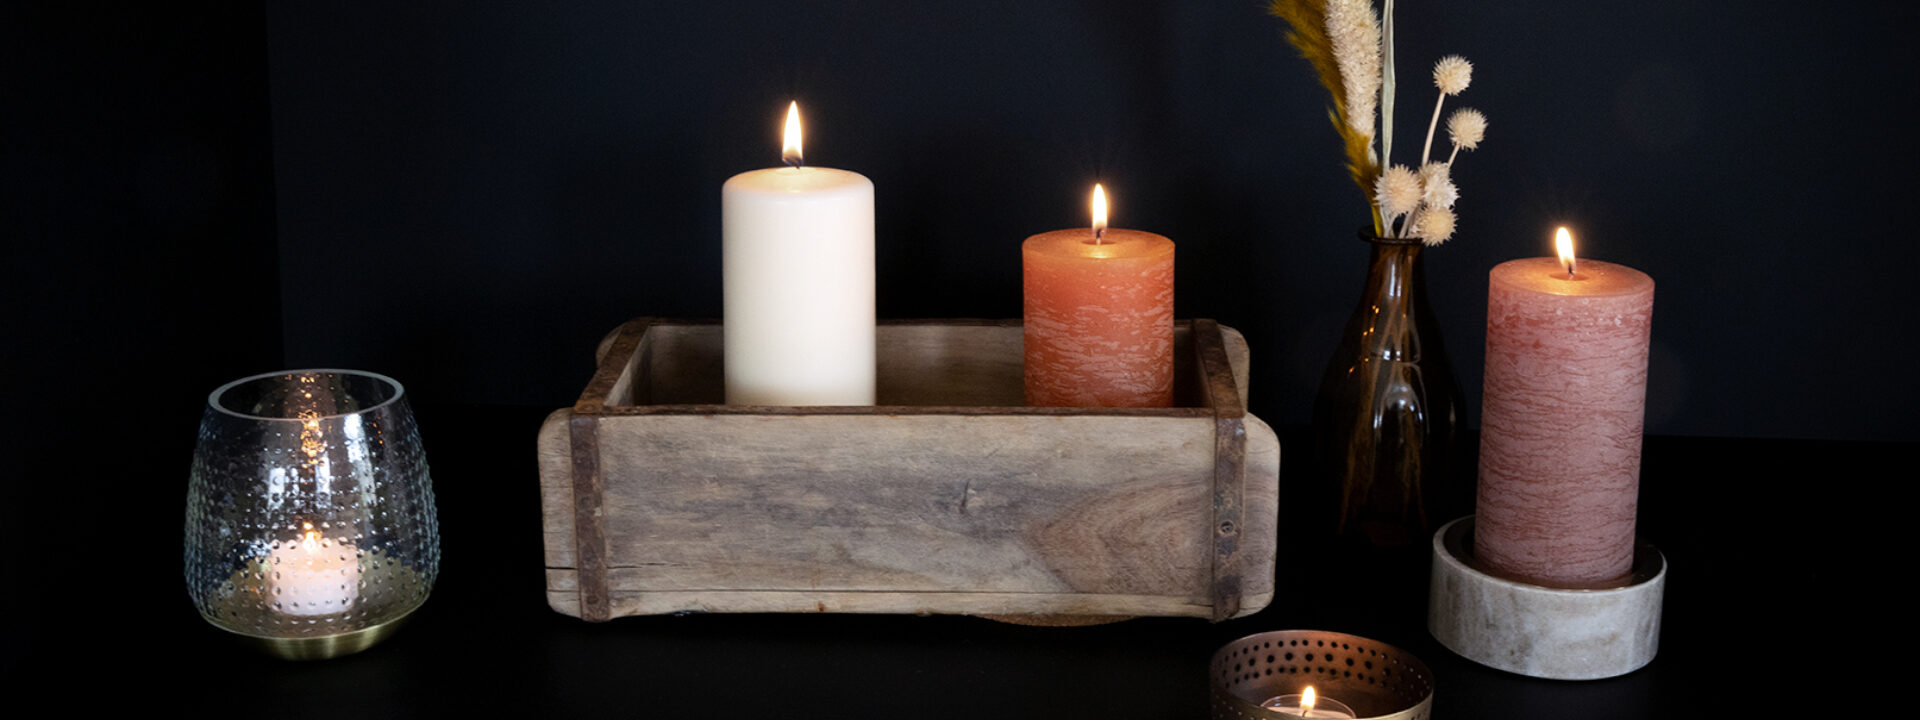 S086835 Afternoon Swiss Natural Candle web